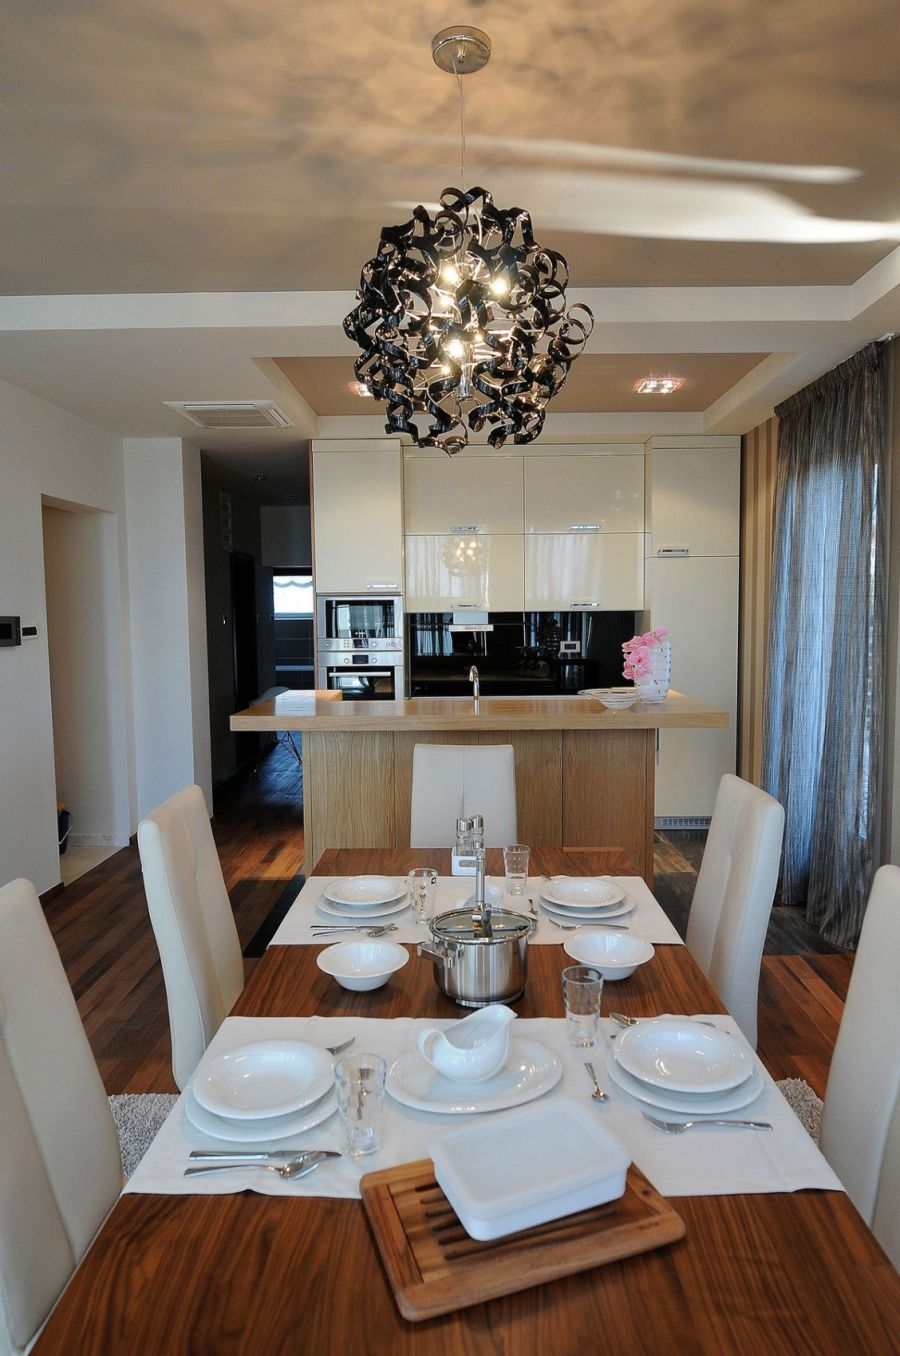 Smart kitchen and dining area